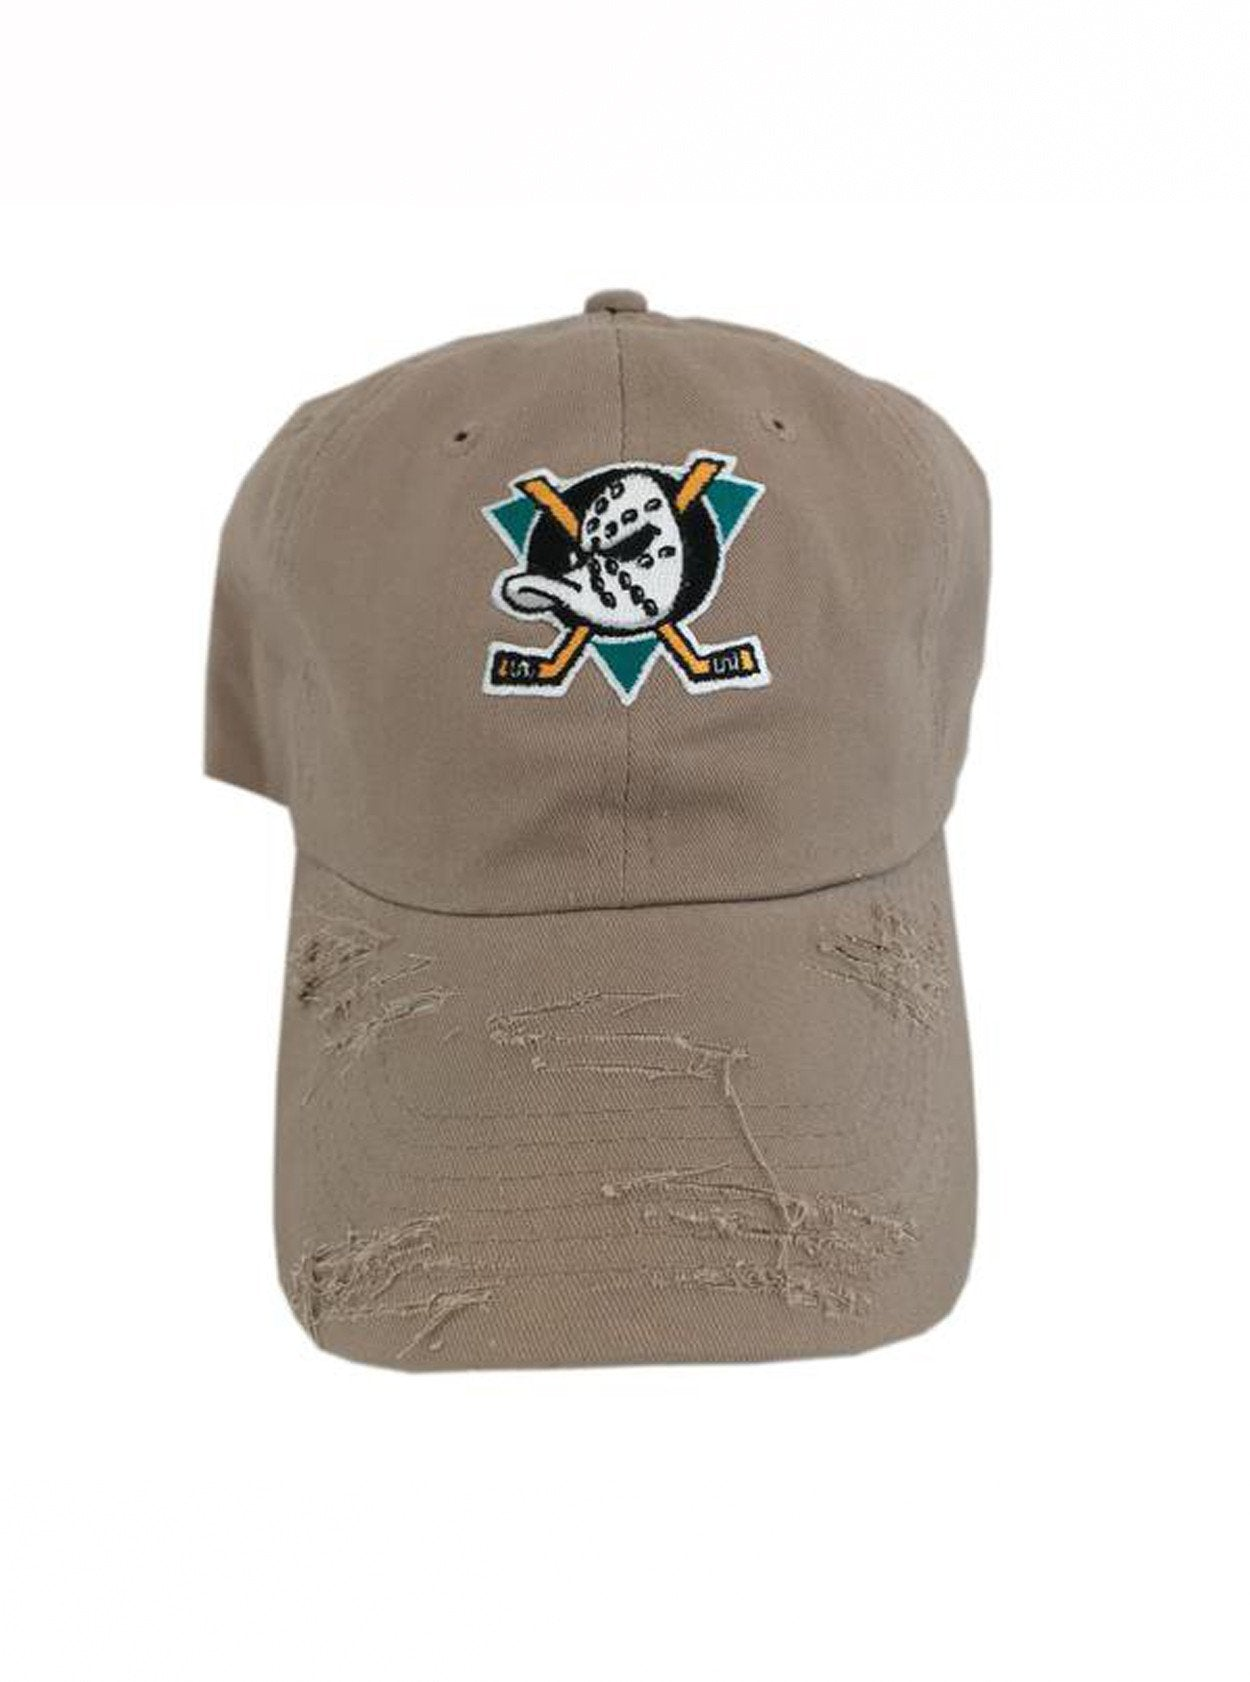 By Lee Apparel Side Mighty Ducks Patch Distressed Dad Hat - Khaki ... 4dc007512a7